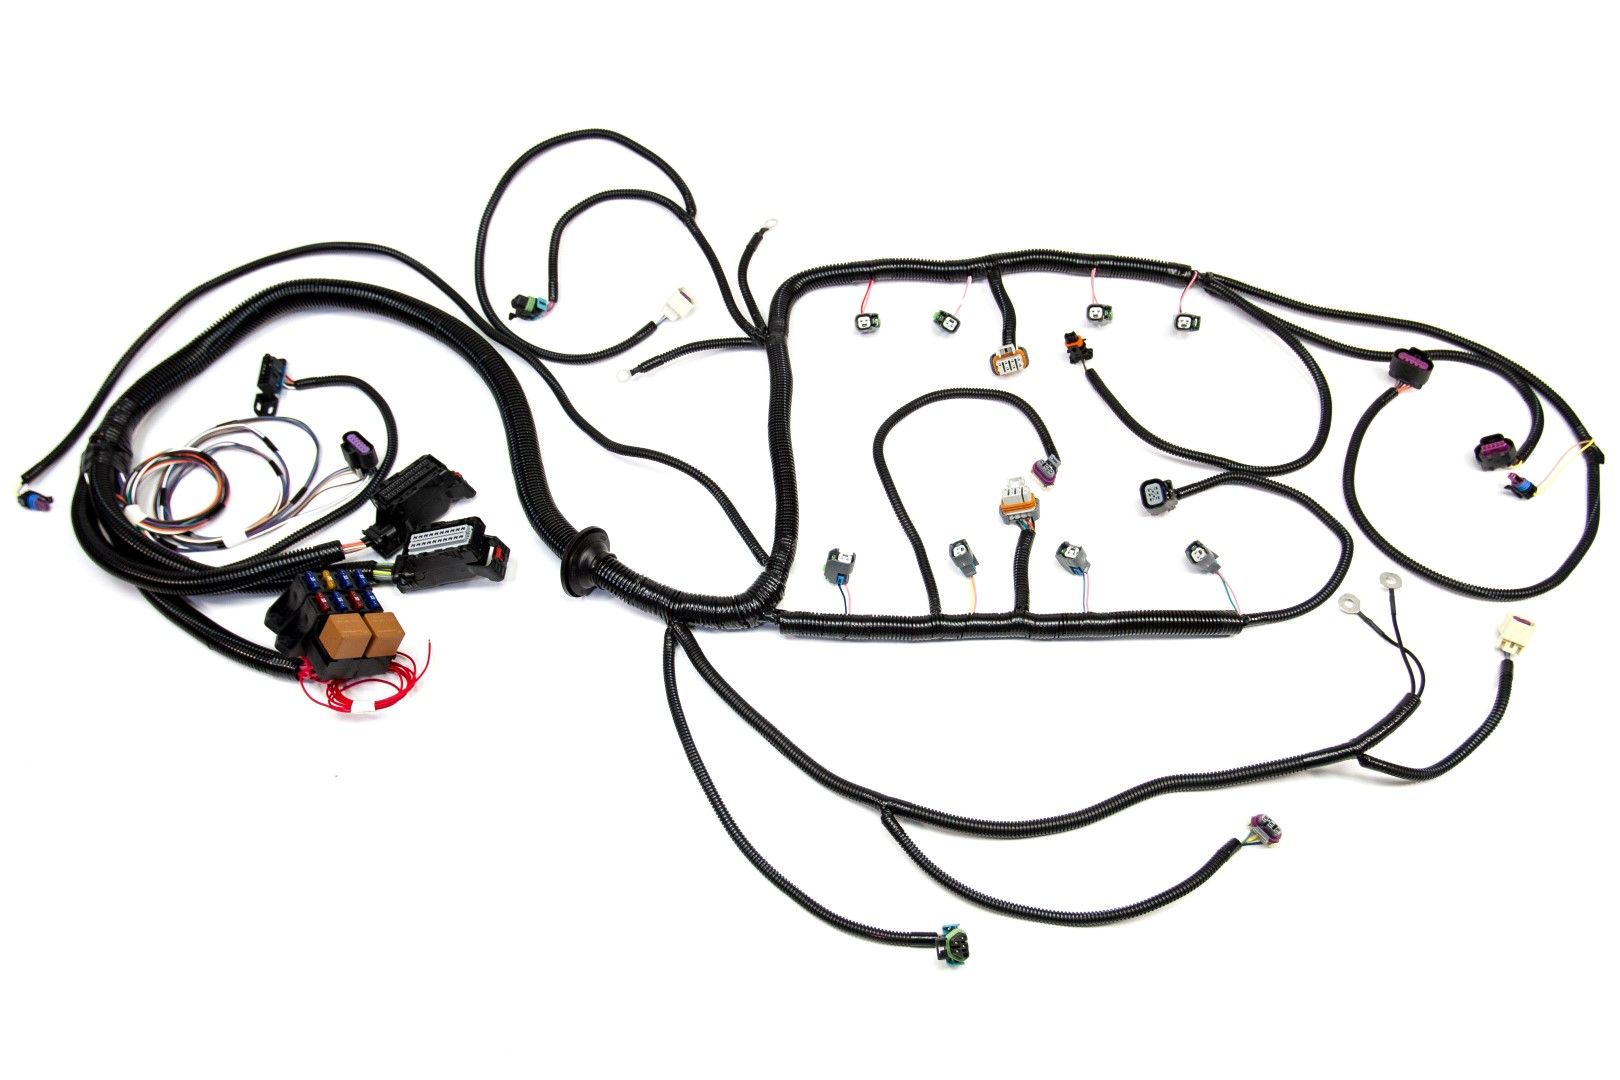 ls2 engine gm wiring harness gm wiring harness diagram 2000 '08 ls2 (6.0l) 58x standalone wiring harness w/t56/tr6060 ...